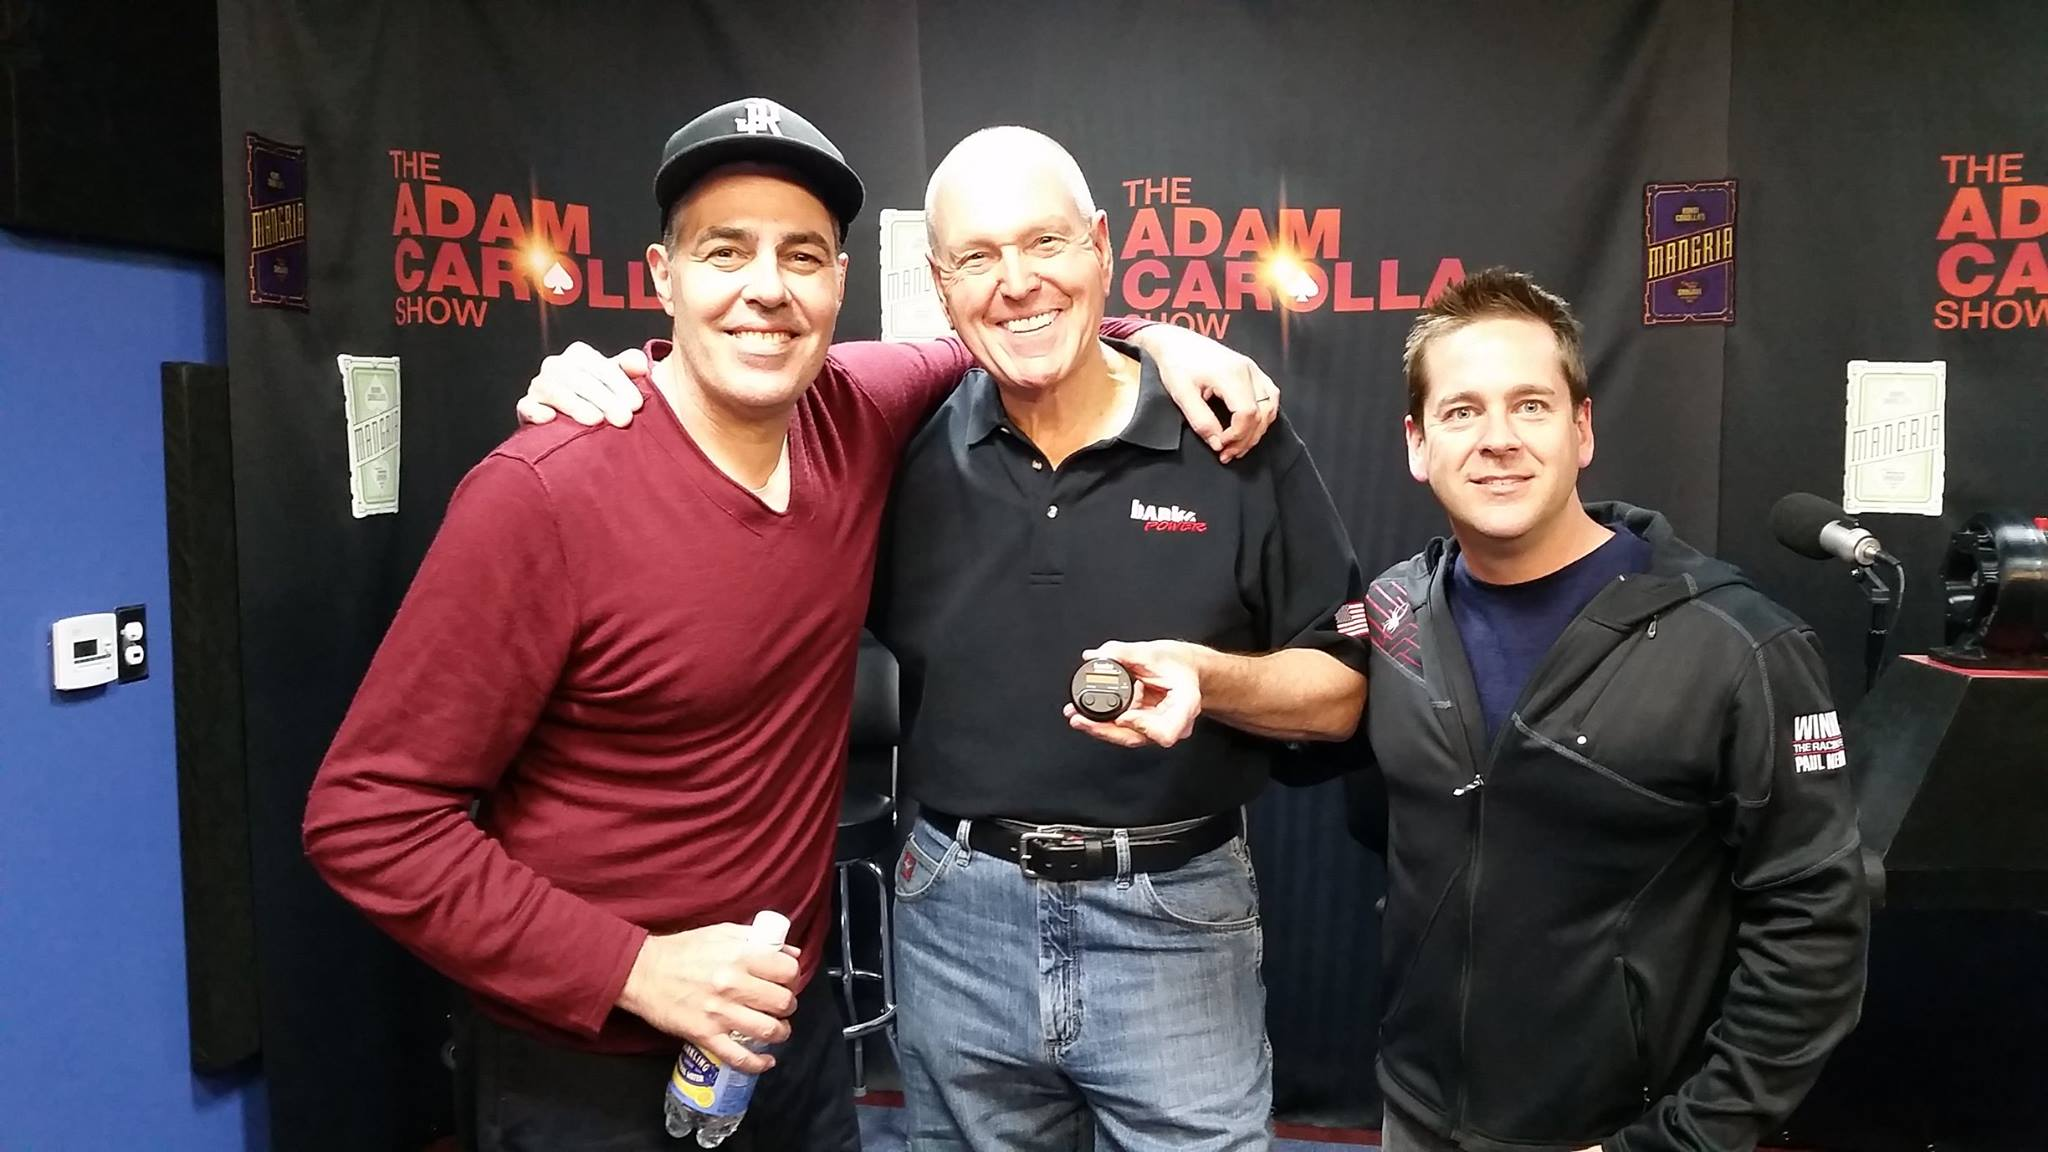 Adam Carolla + Gale Banks